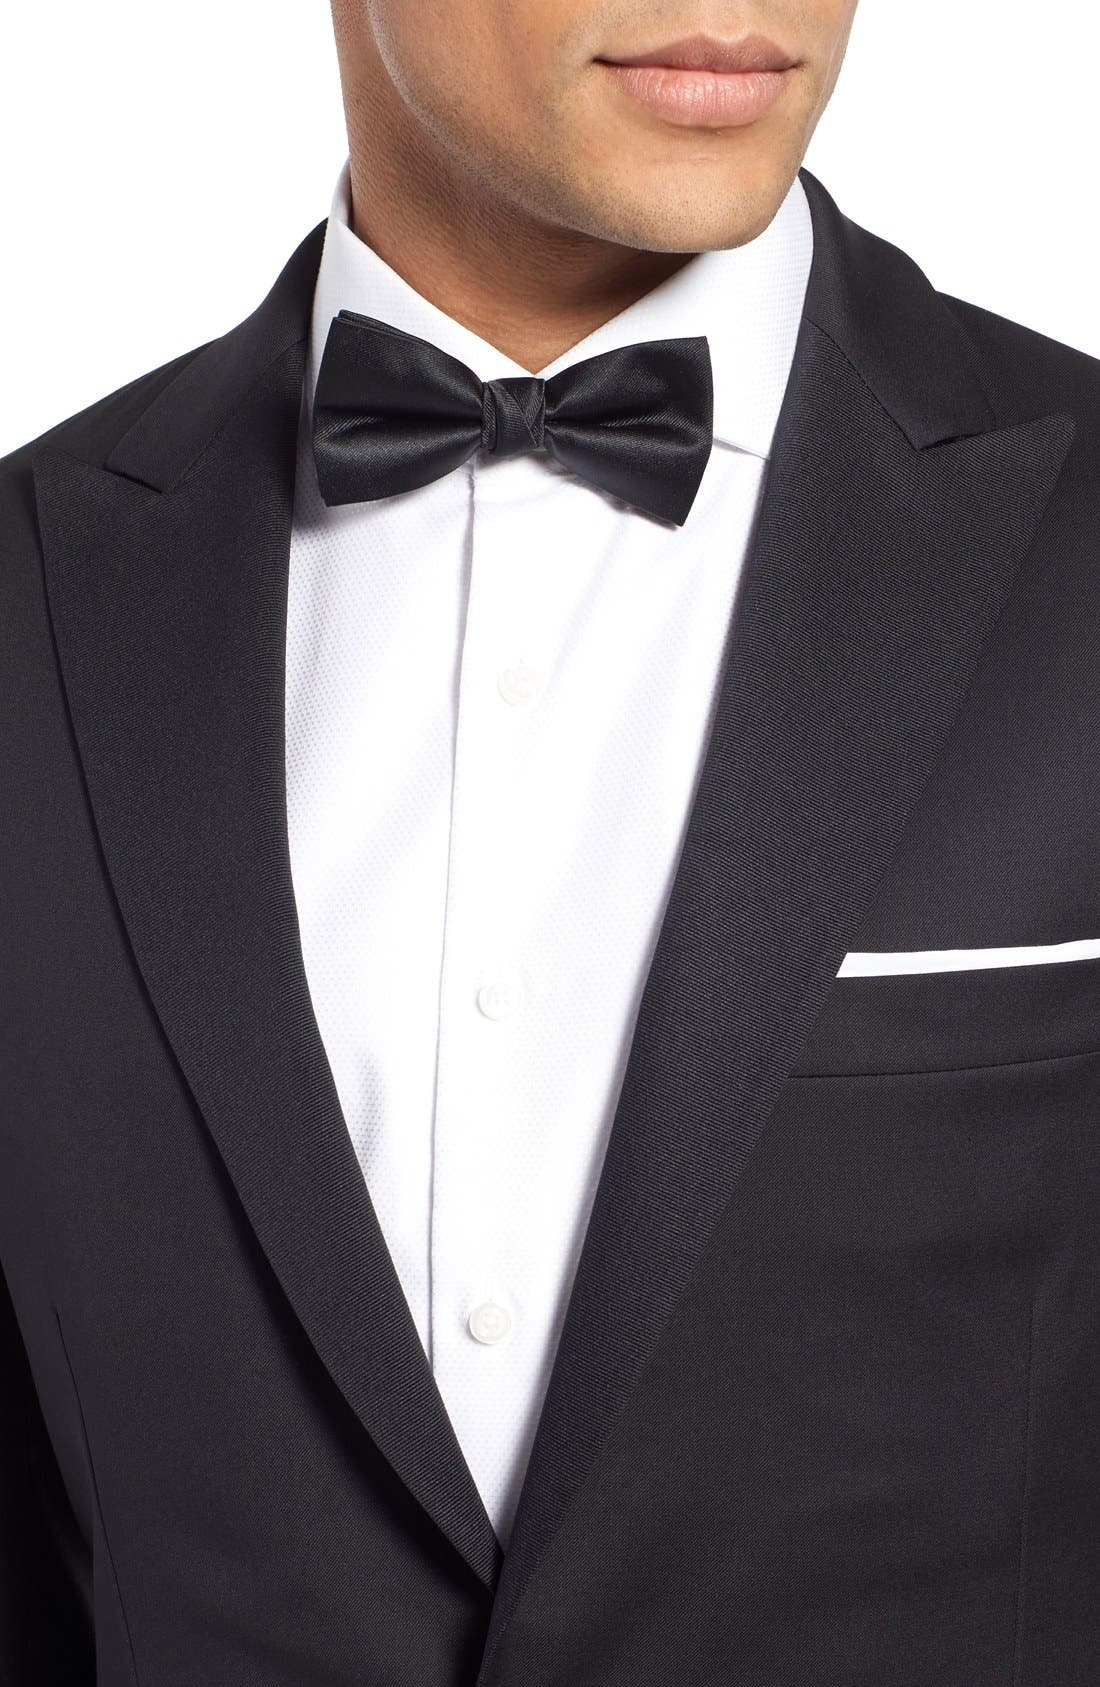 Classic Fit Wool Tuxedo,                             Alternate thumbnail 4, color,                             001